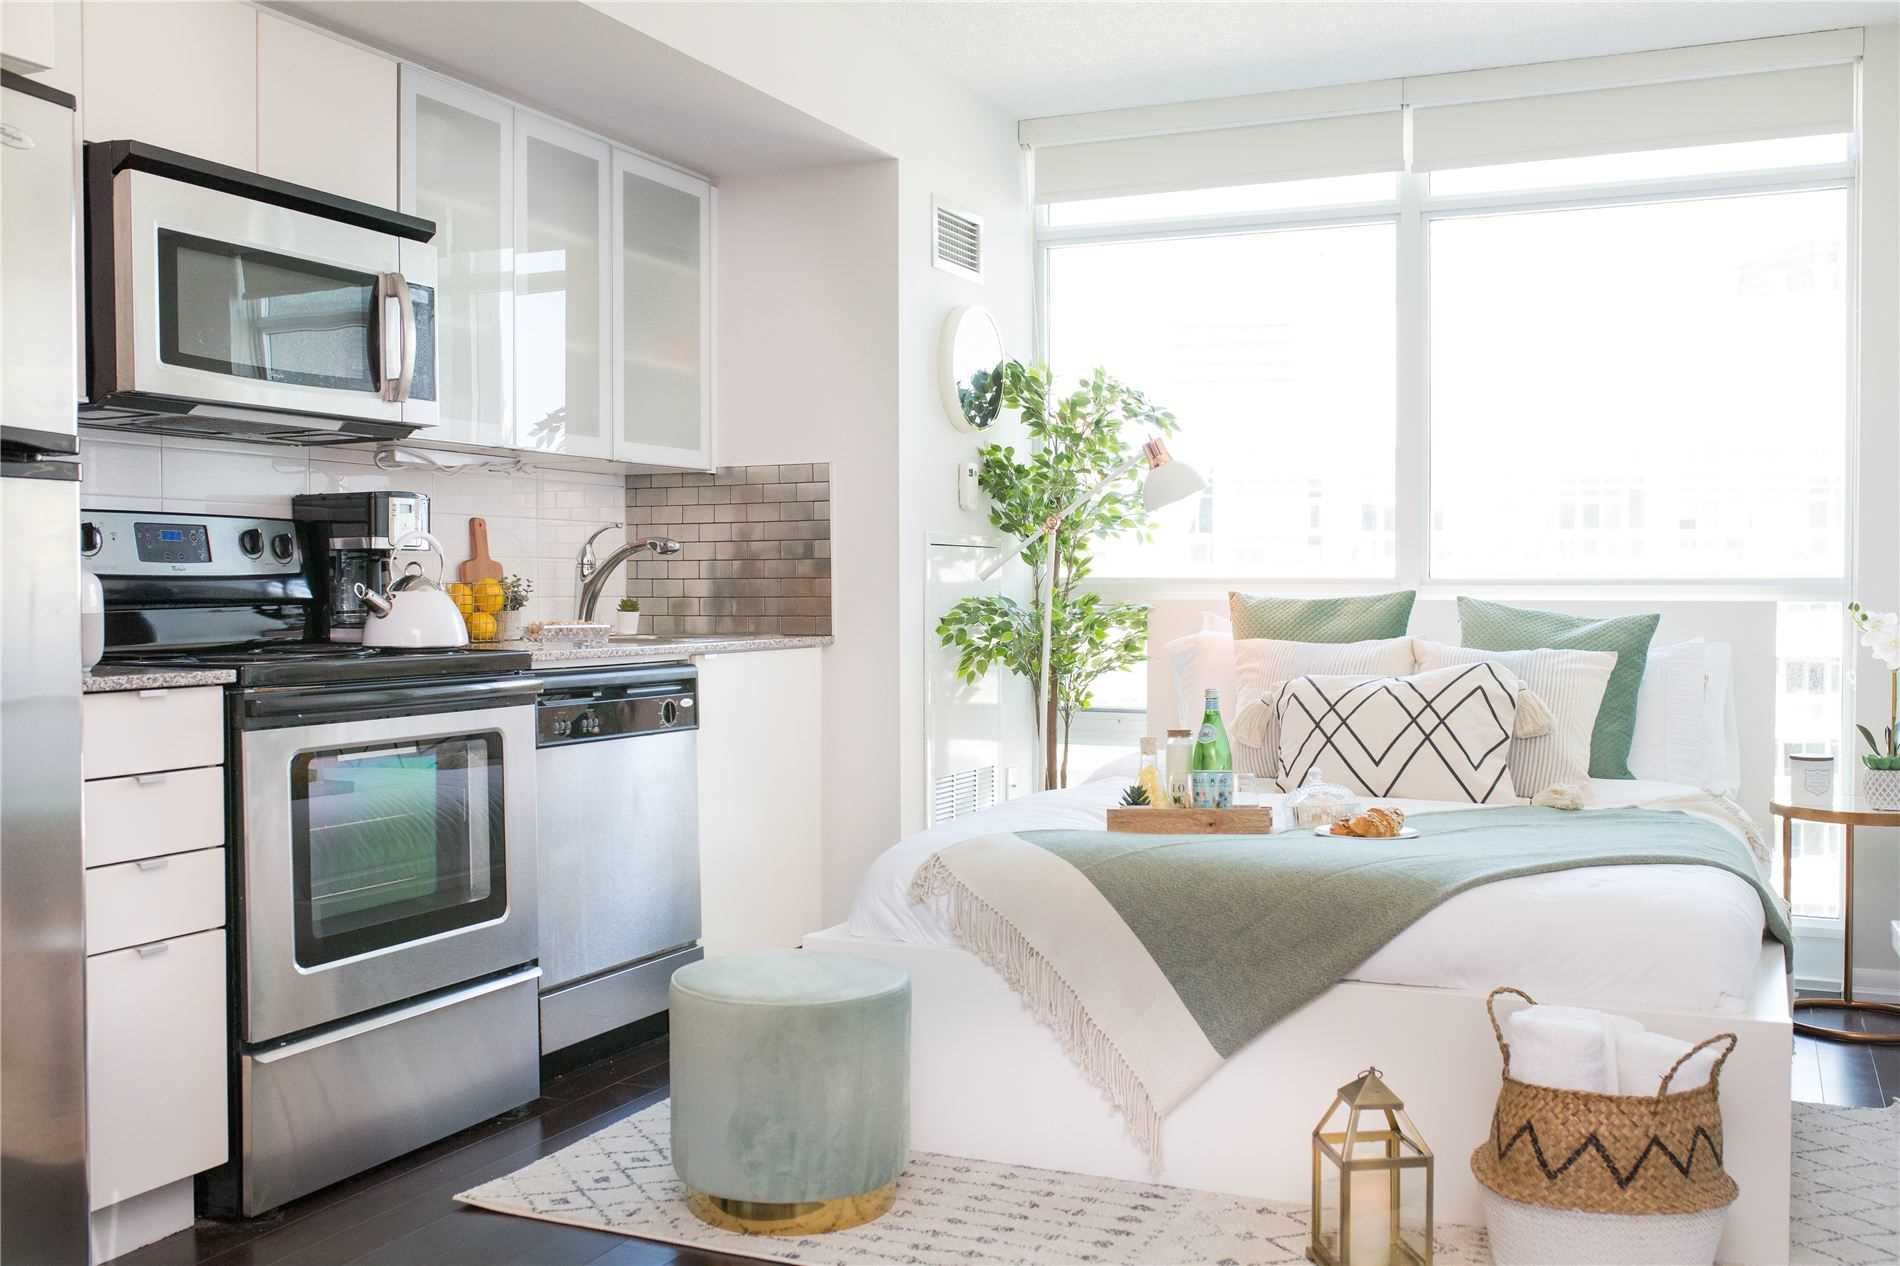 For Sale: 1564 - 209 Fort York Boulevard, Toronto, ON | 0 Bed, 1 Bath Condo for $399900.00. See 12 photos!